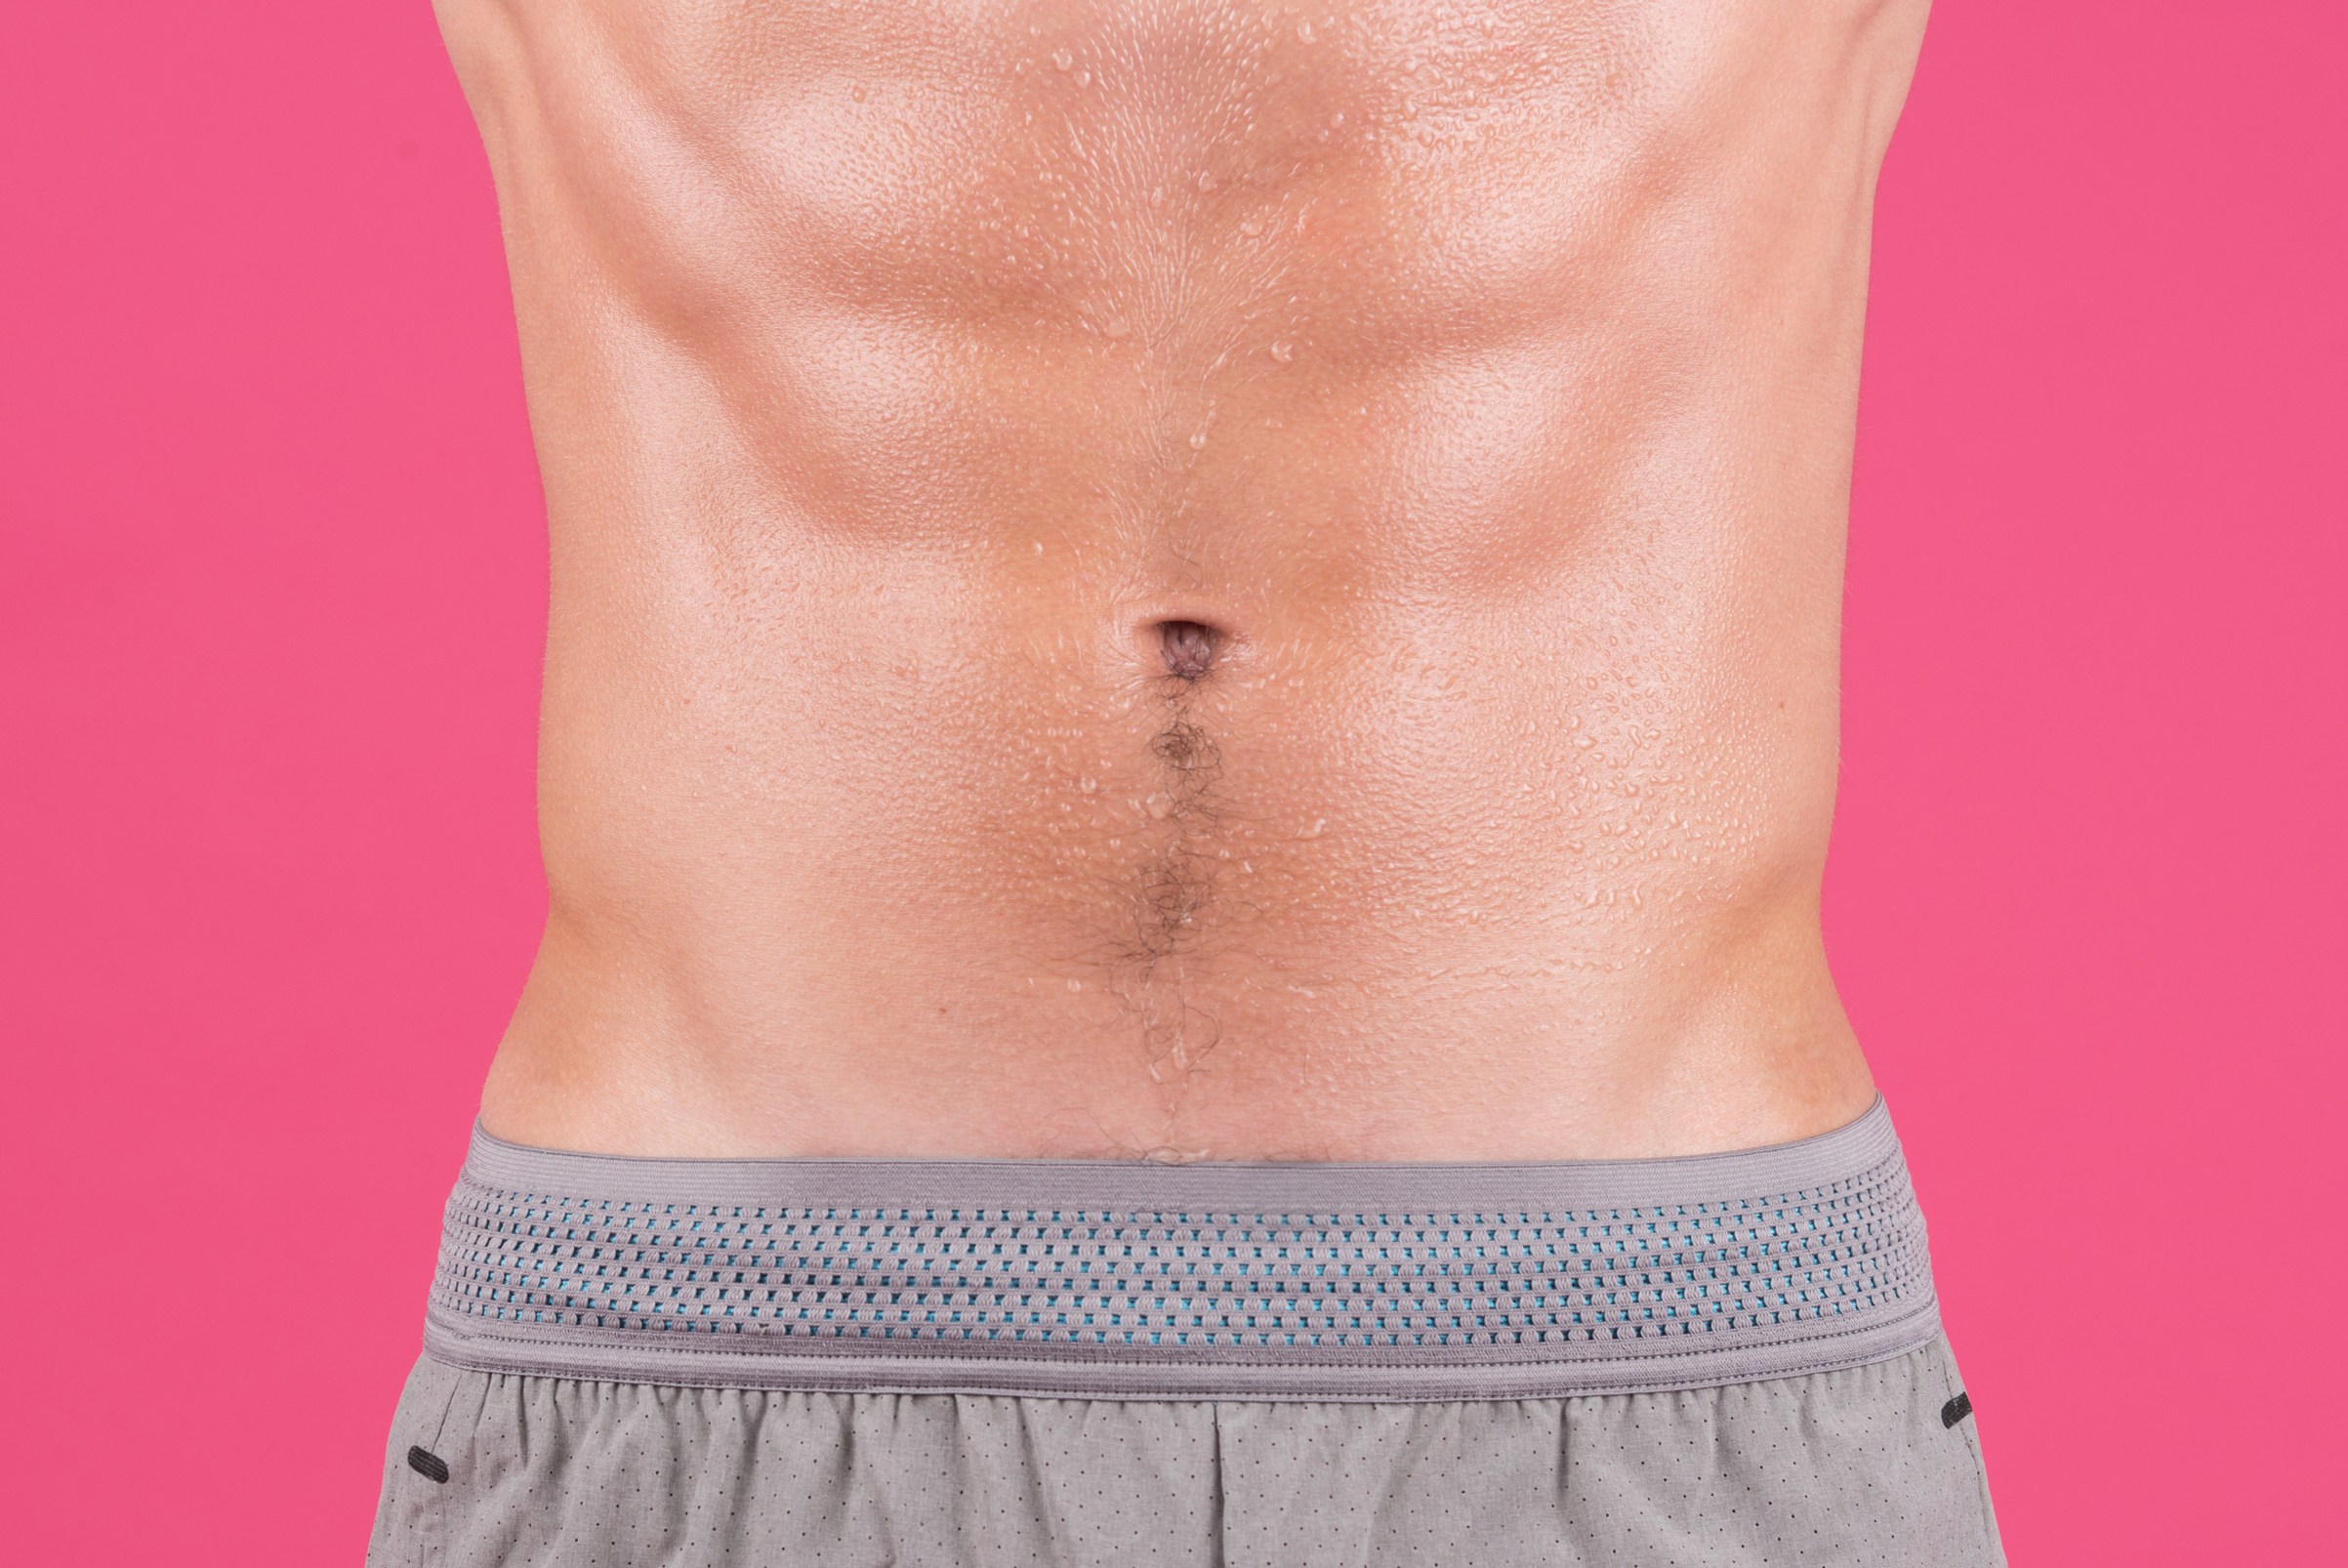 You Asked: What Is Belly Button Lint?